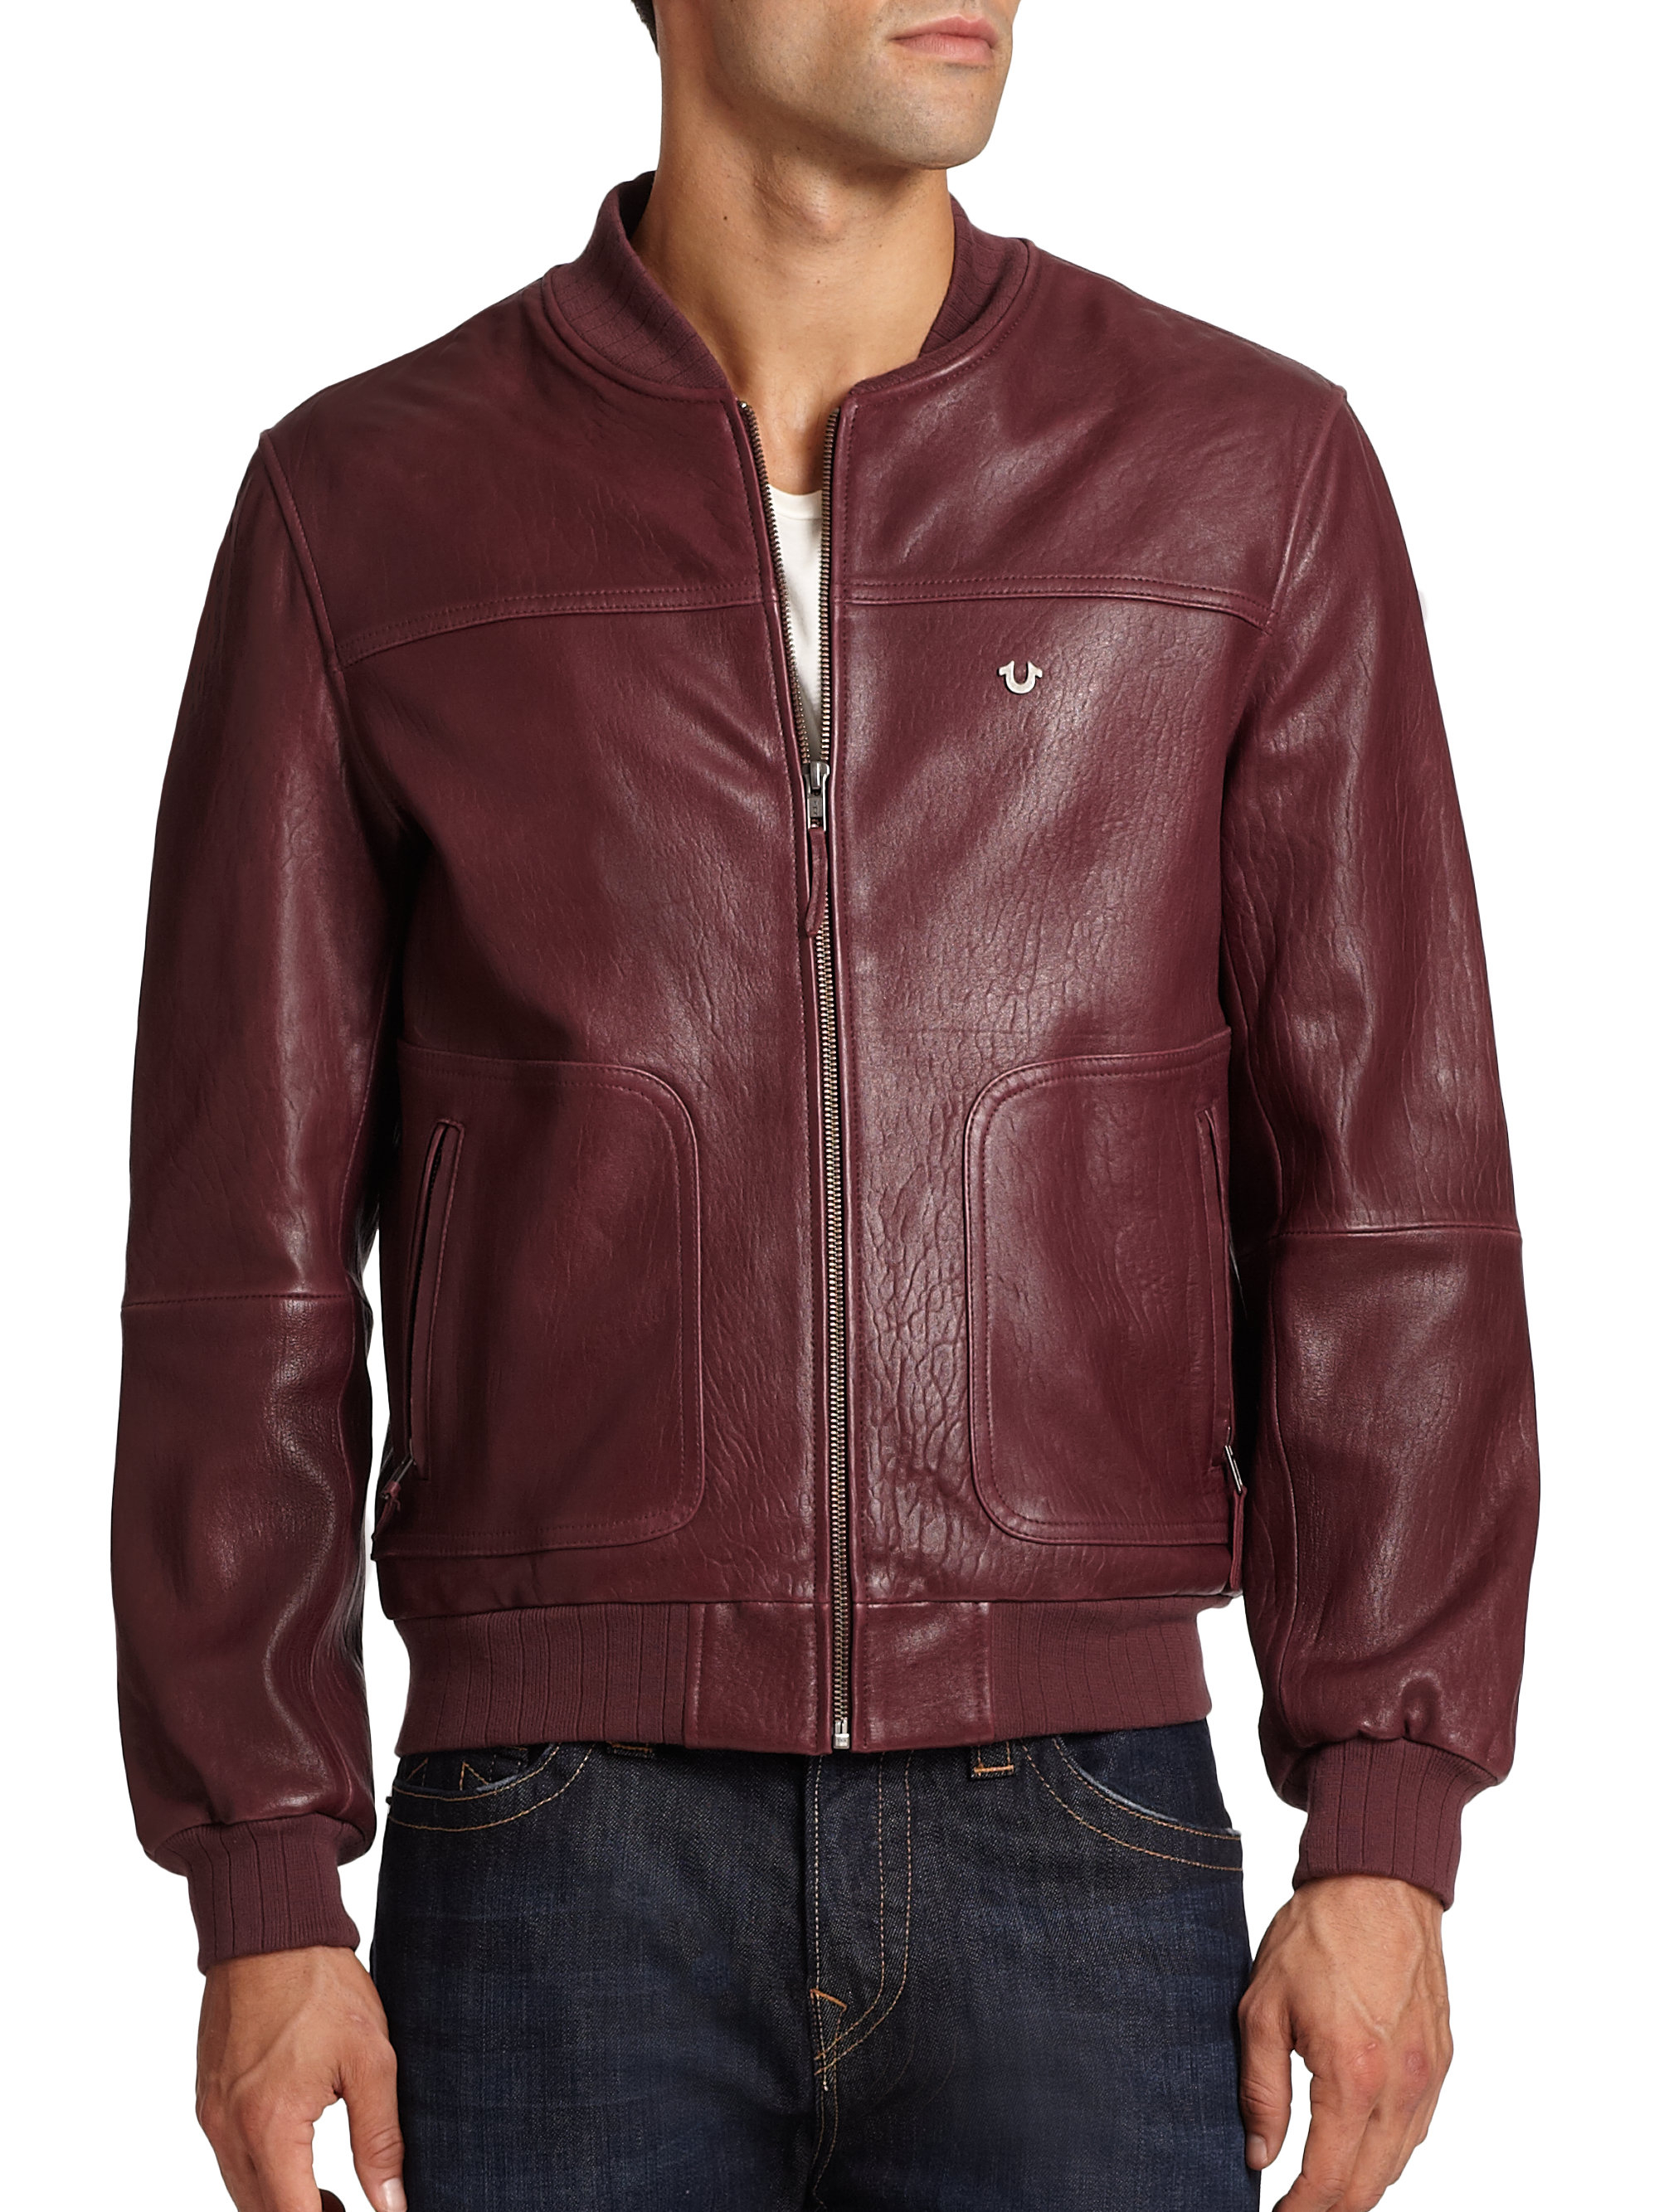 True religion mens leather jacket